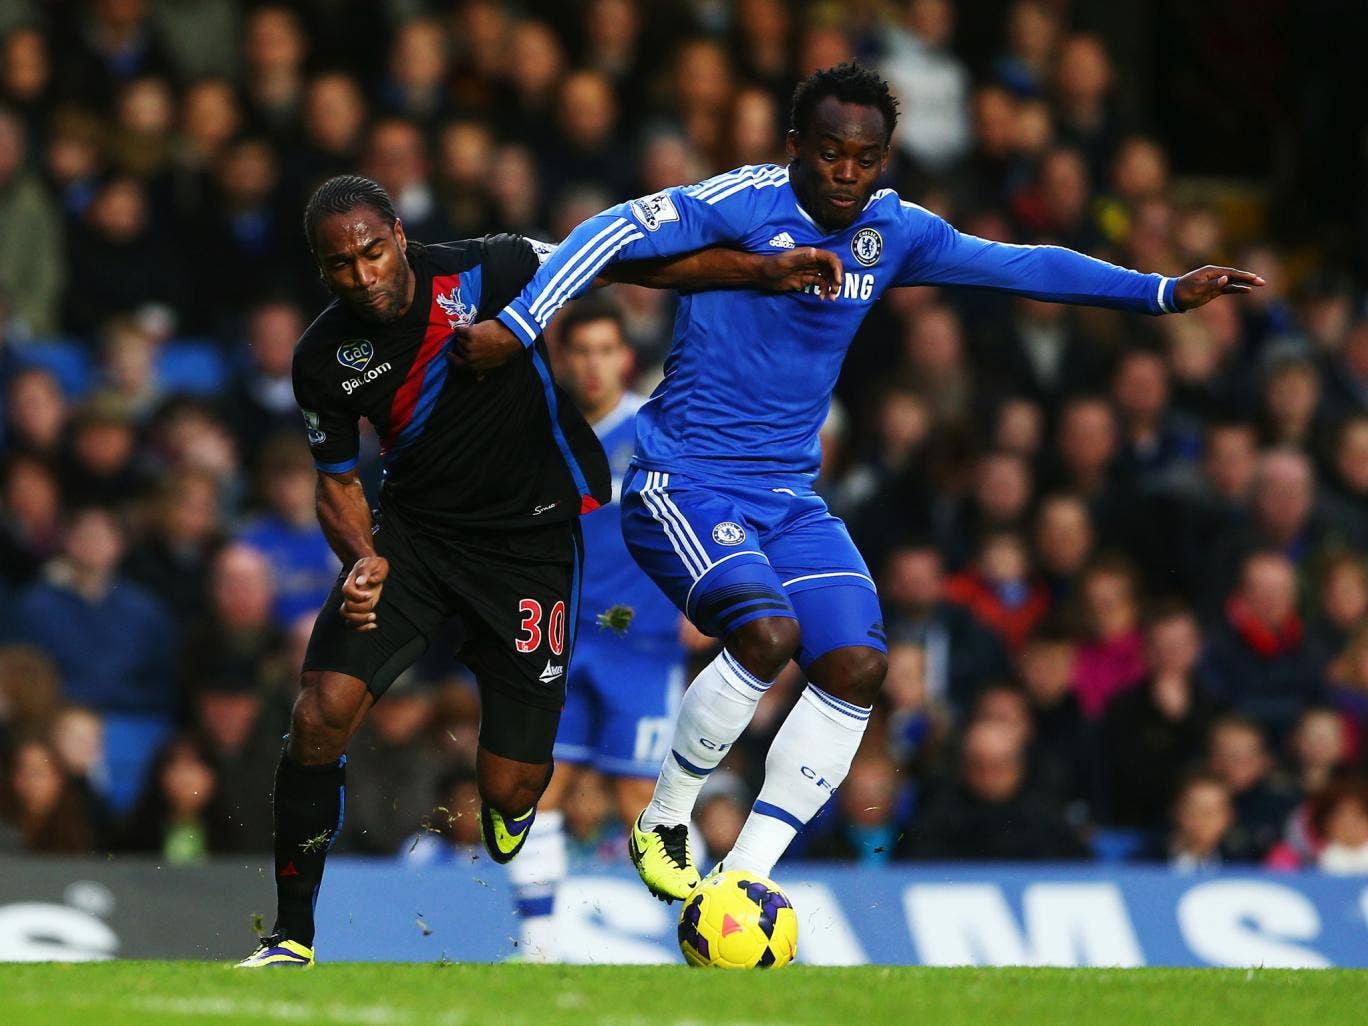 Chelsea midfielder Michael Essien could be on his way out of the club in January according to his agent